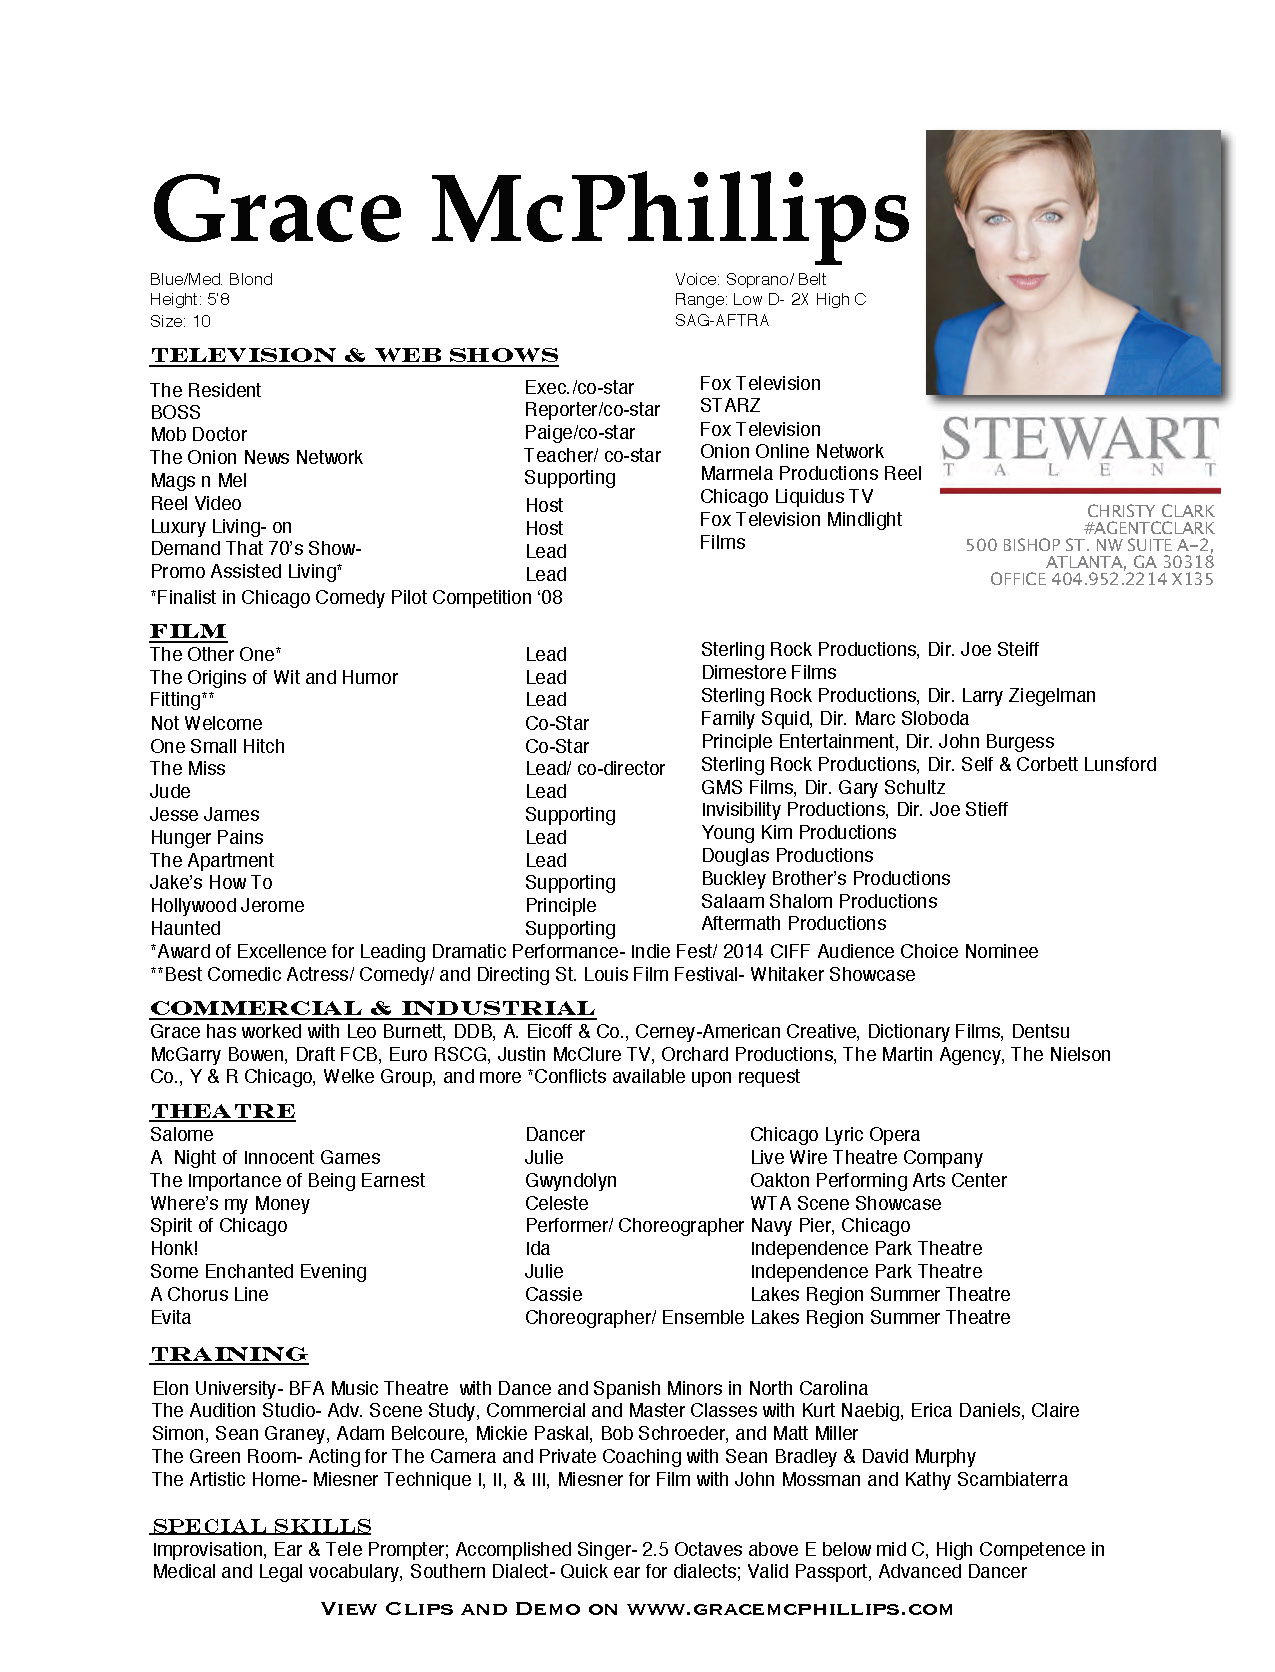 GraceMcPhillips_Resume2019.jpg